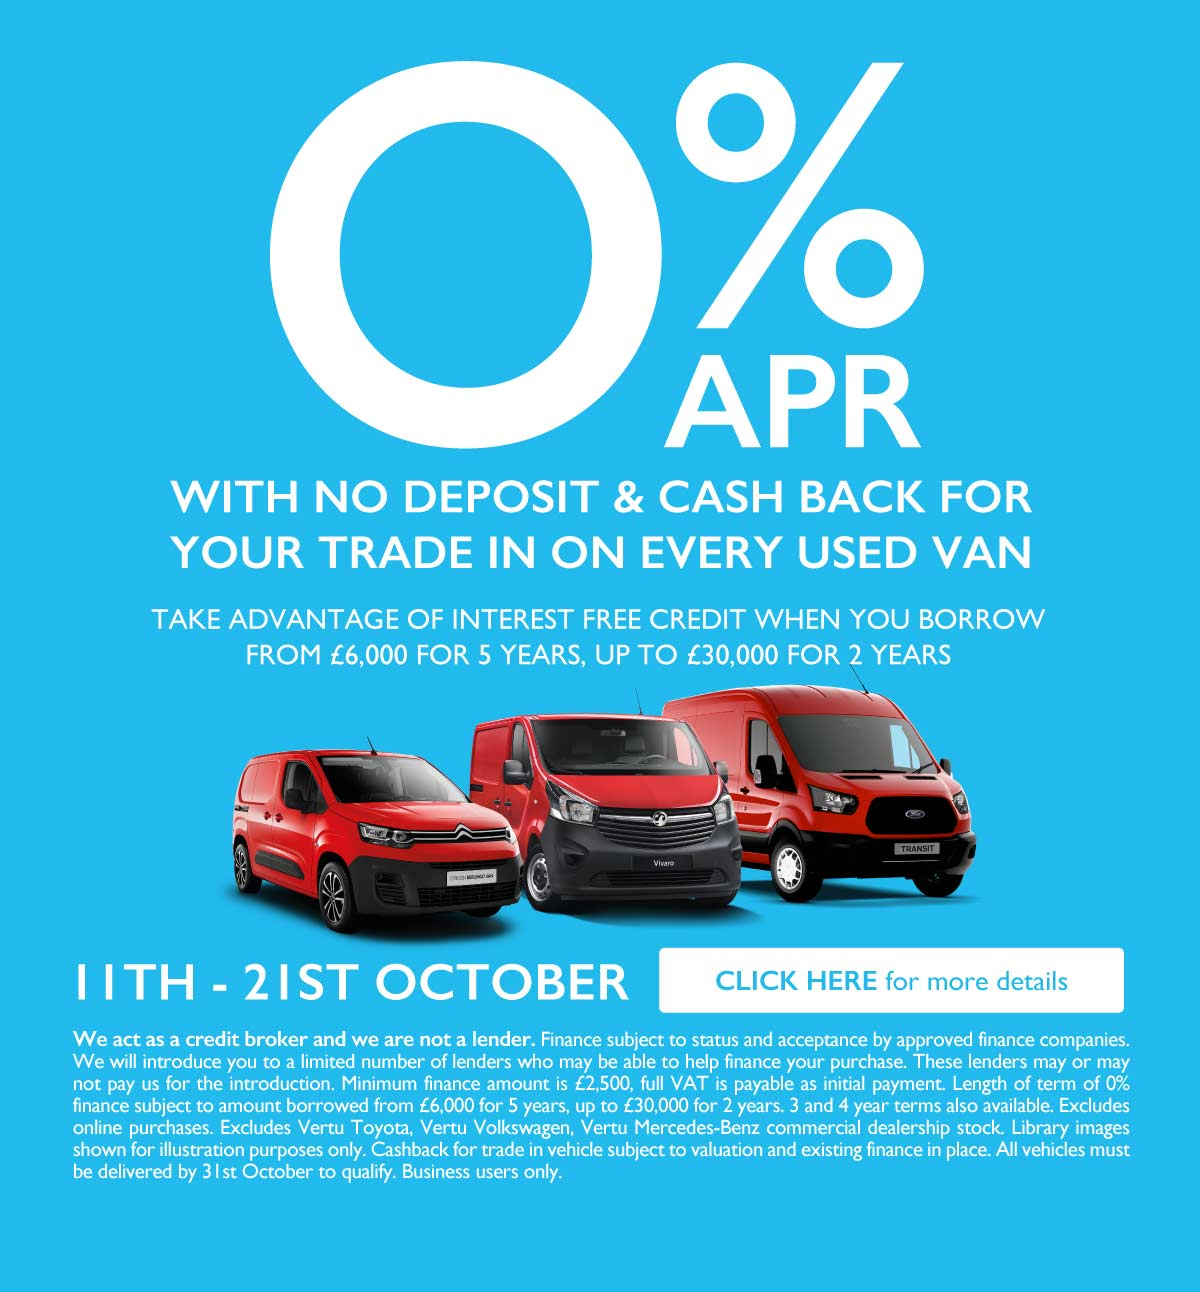 0% Used Car Event October 2019 - BSM Vans